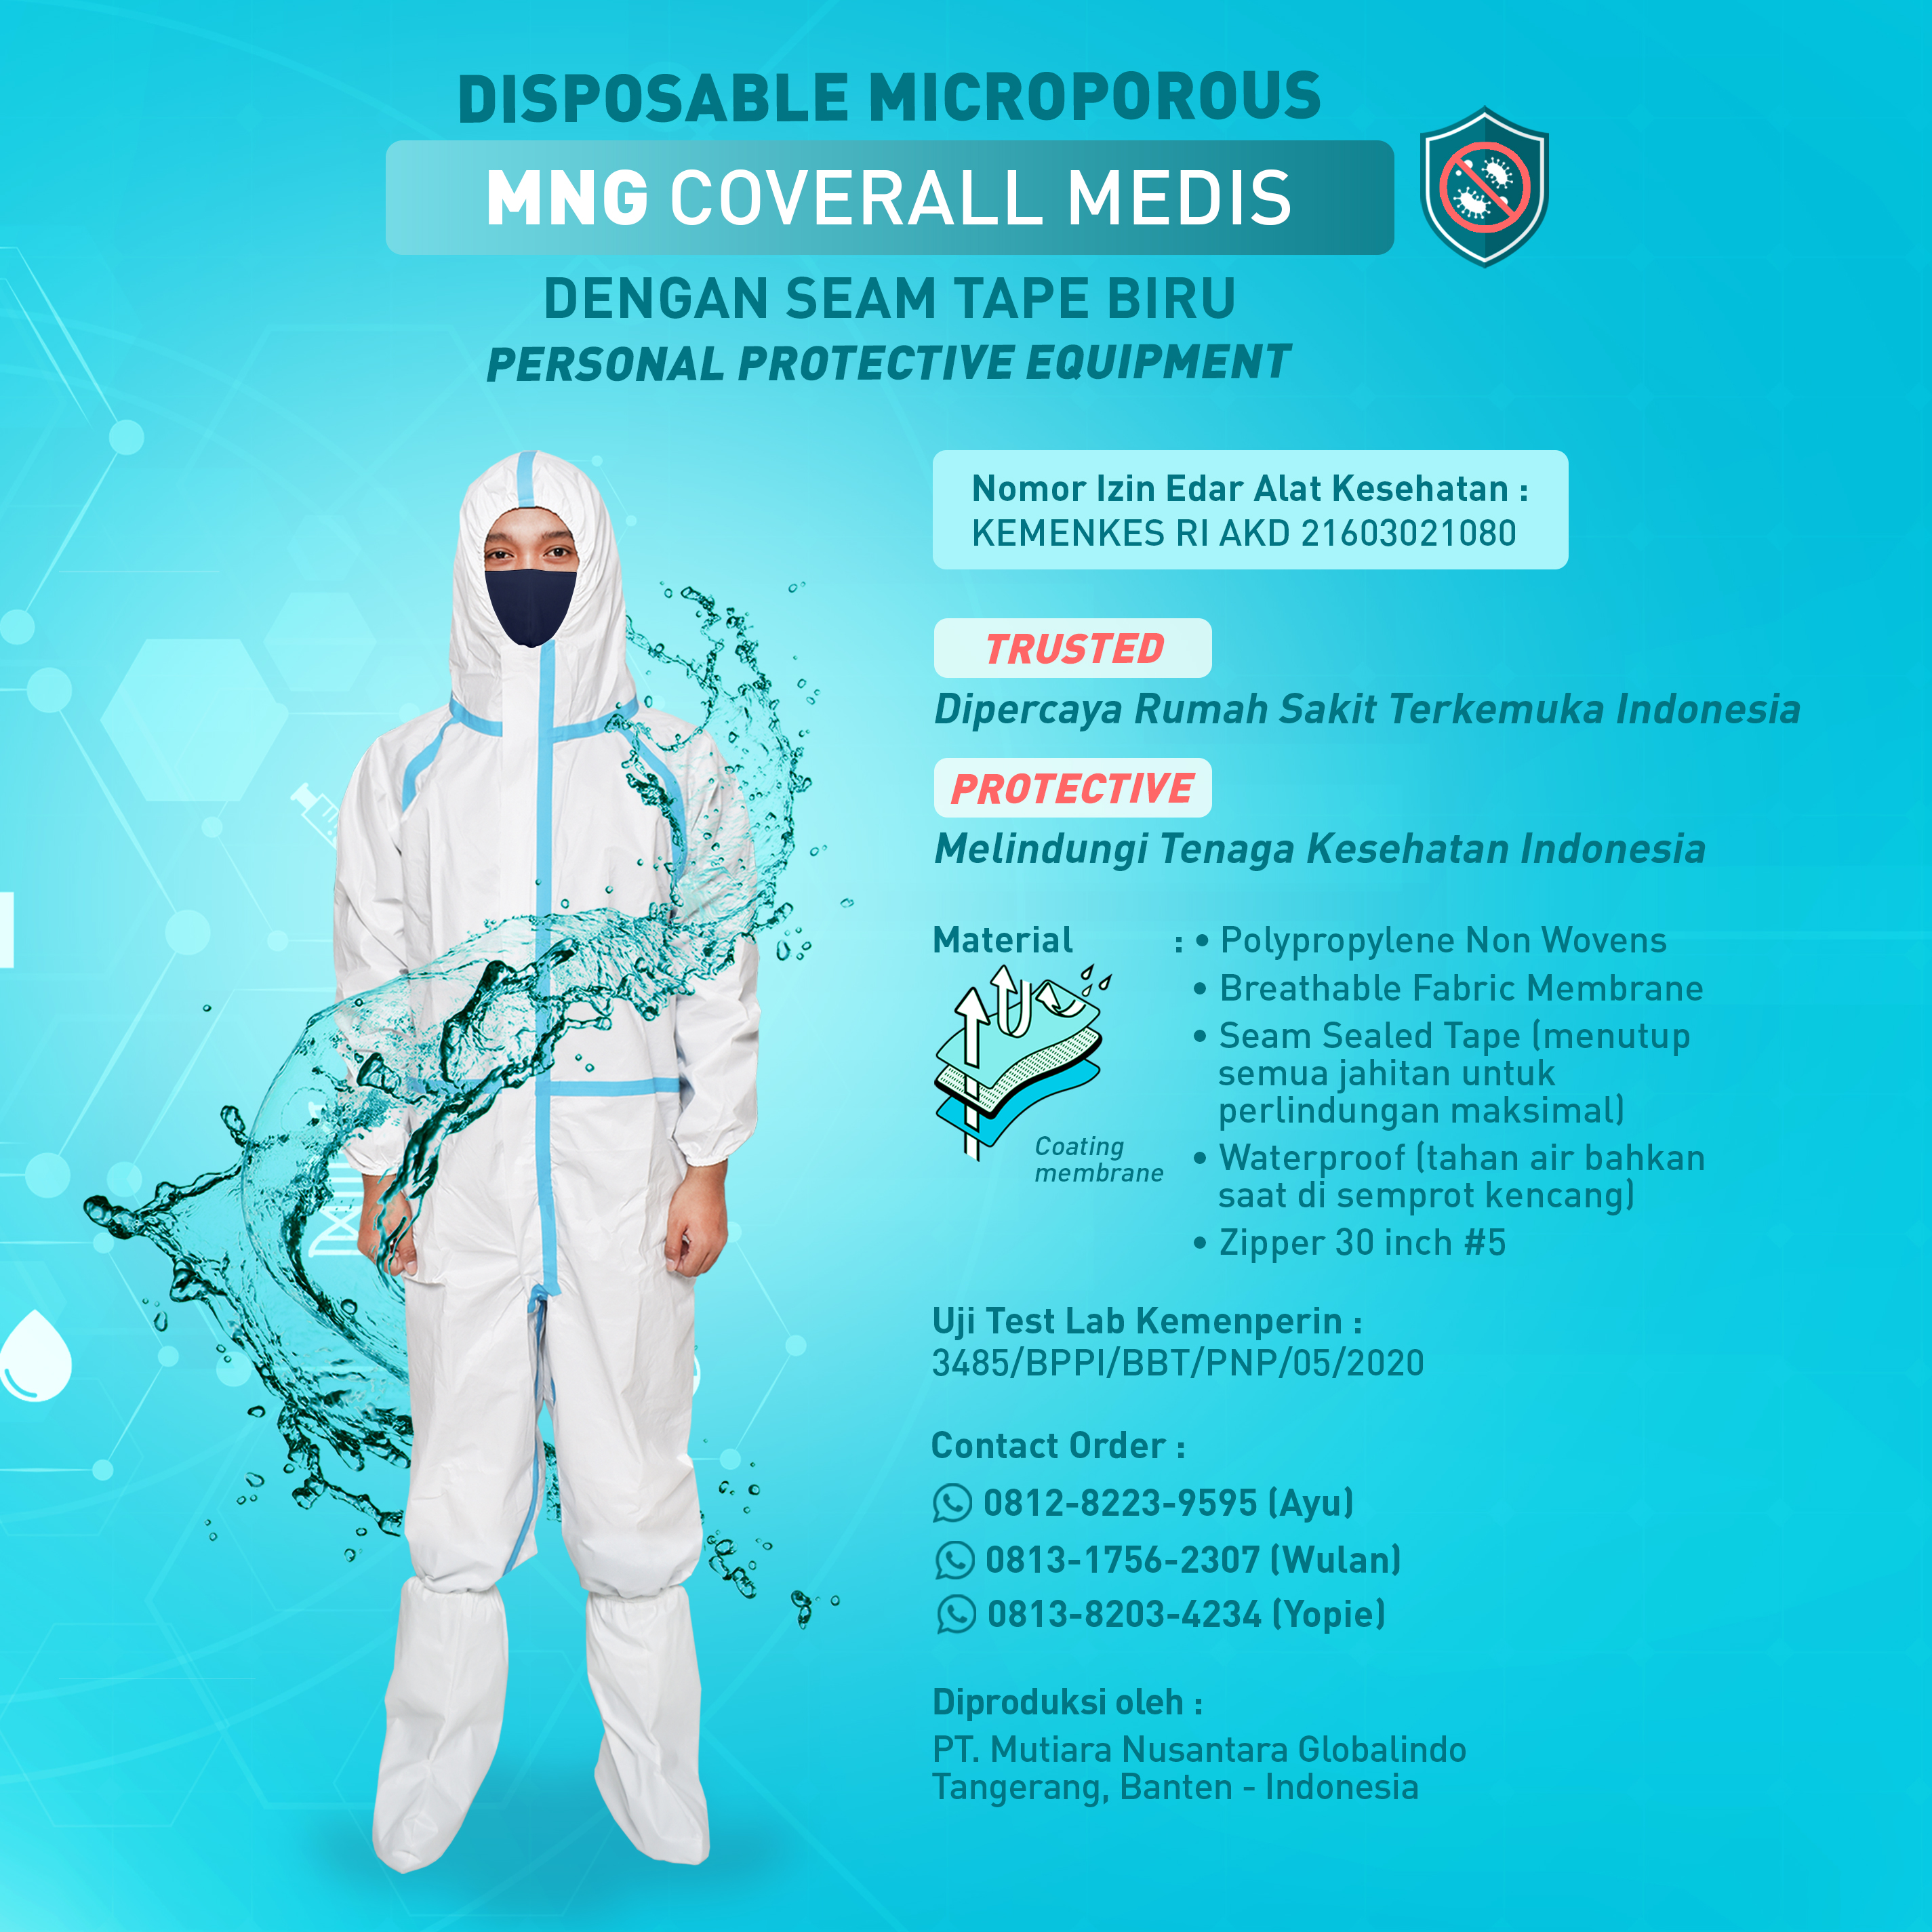 MNG Coverall Medis